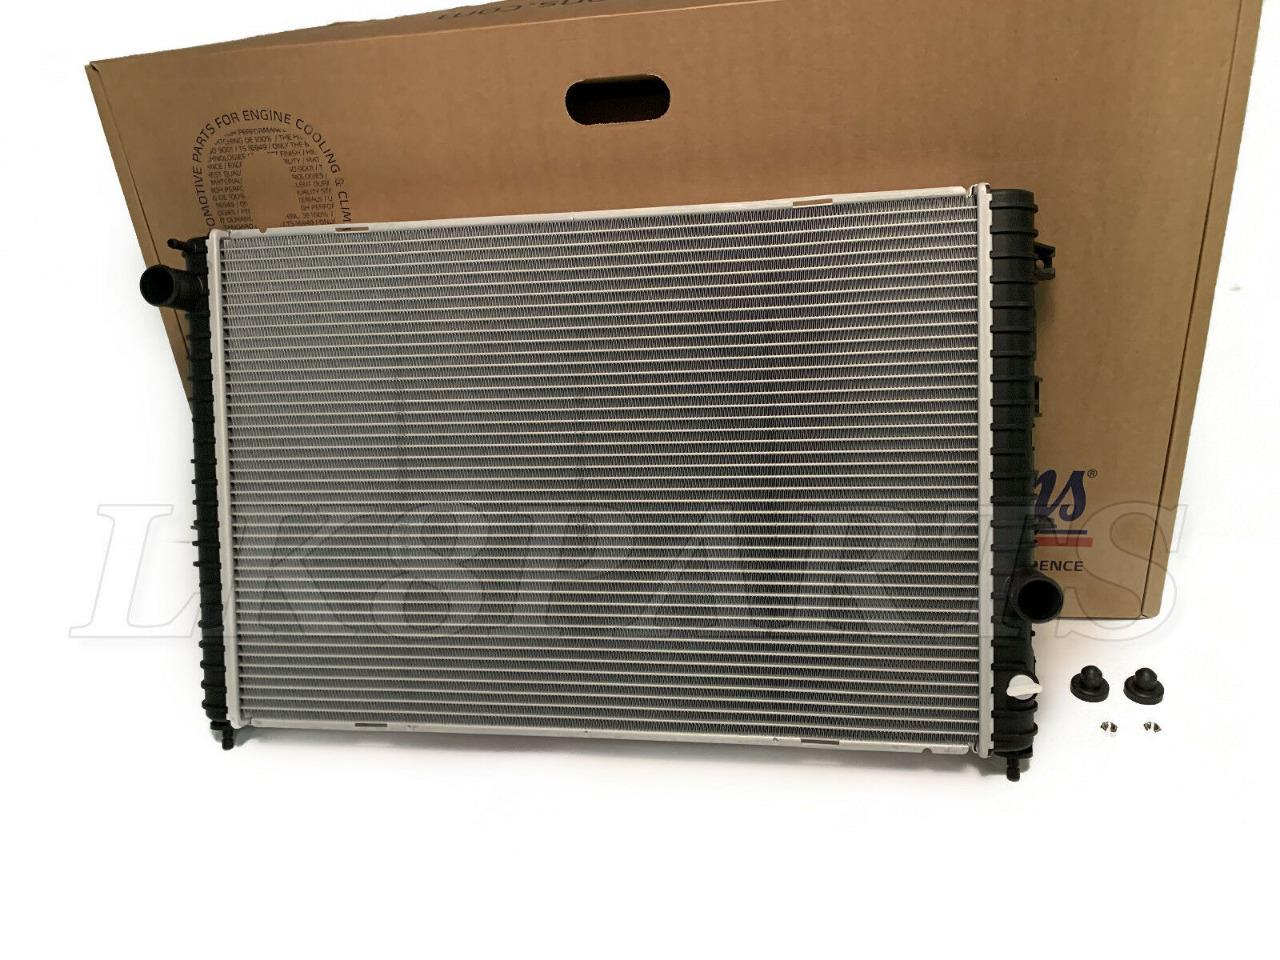 Radiator For 94-99 Land Rover Discovery 87-95 Range Rover 2 Rows